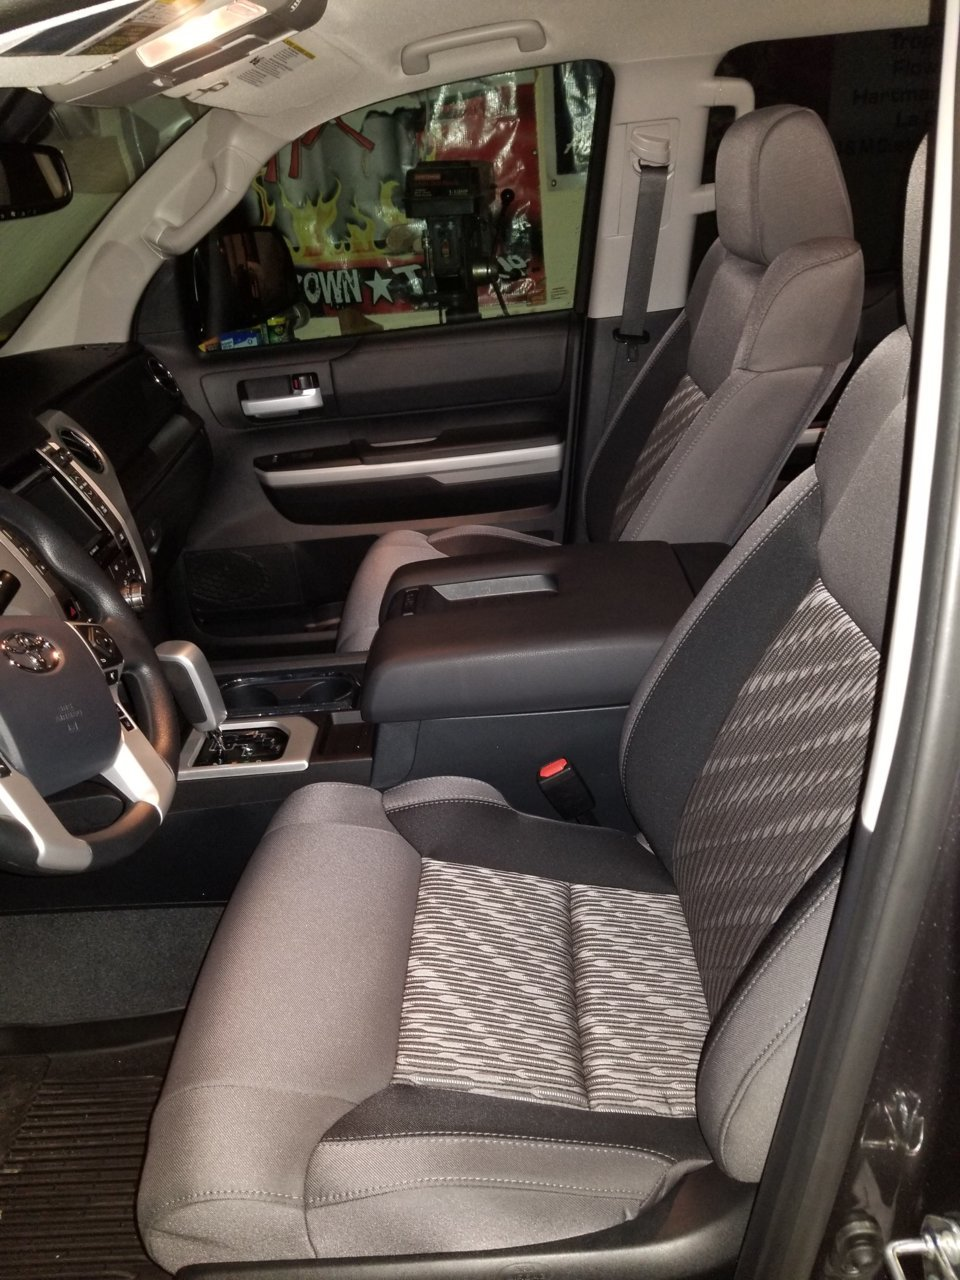 Enjoyable Katzkin Leather Heated Cooled Seats Toyota Tundra Forum Andrewgaddart Wooden Chair Designs For Living Room Andrewgaddartcom